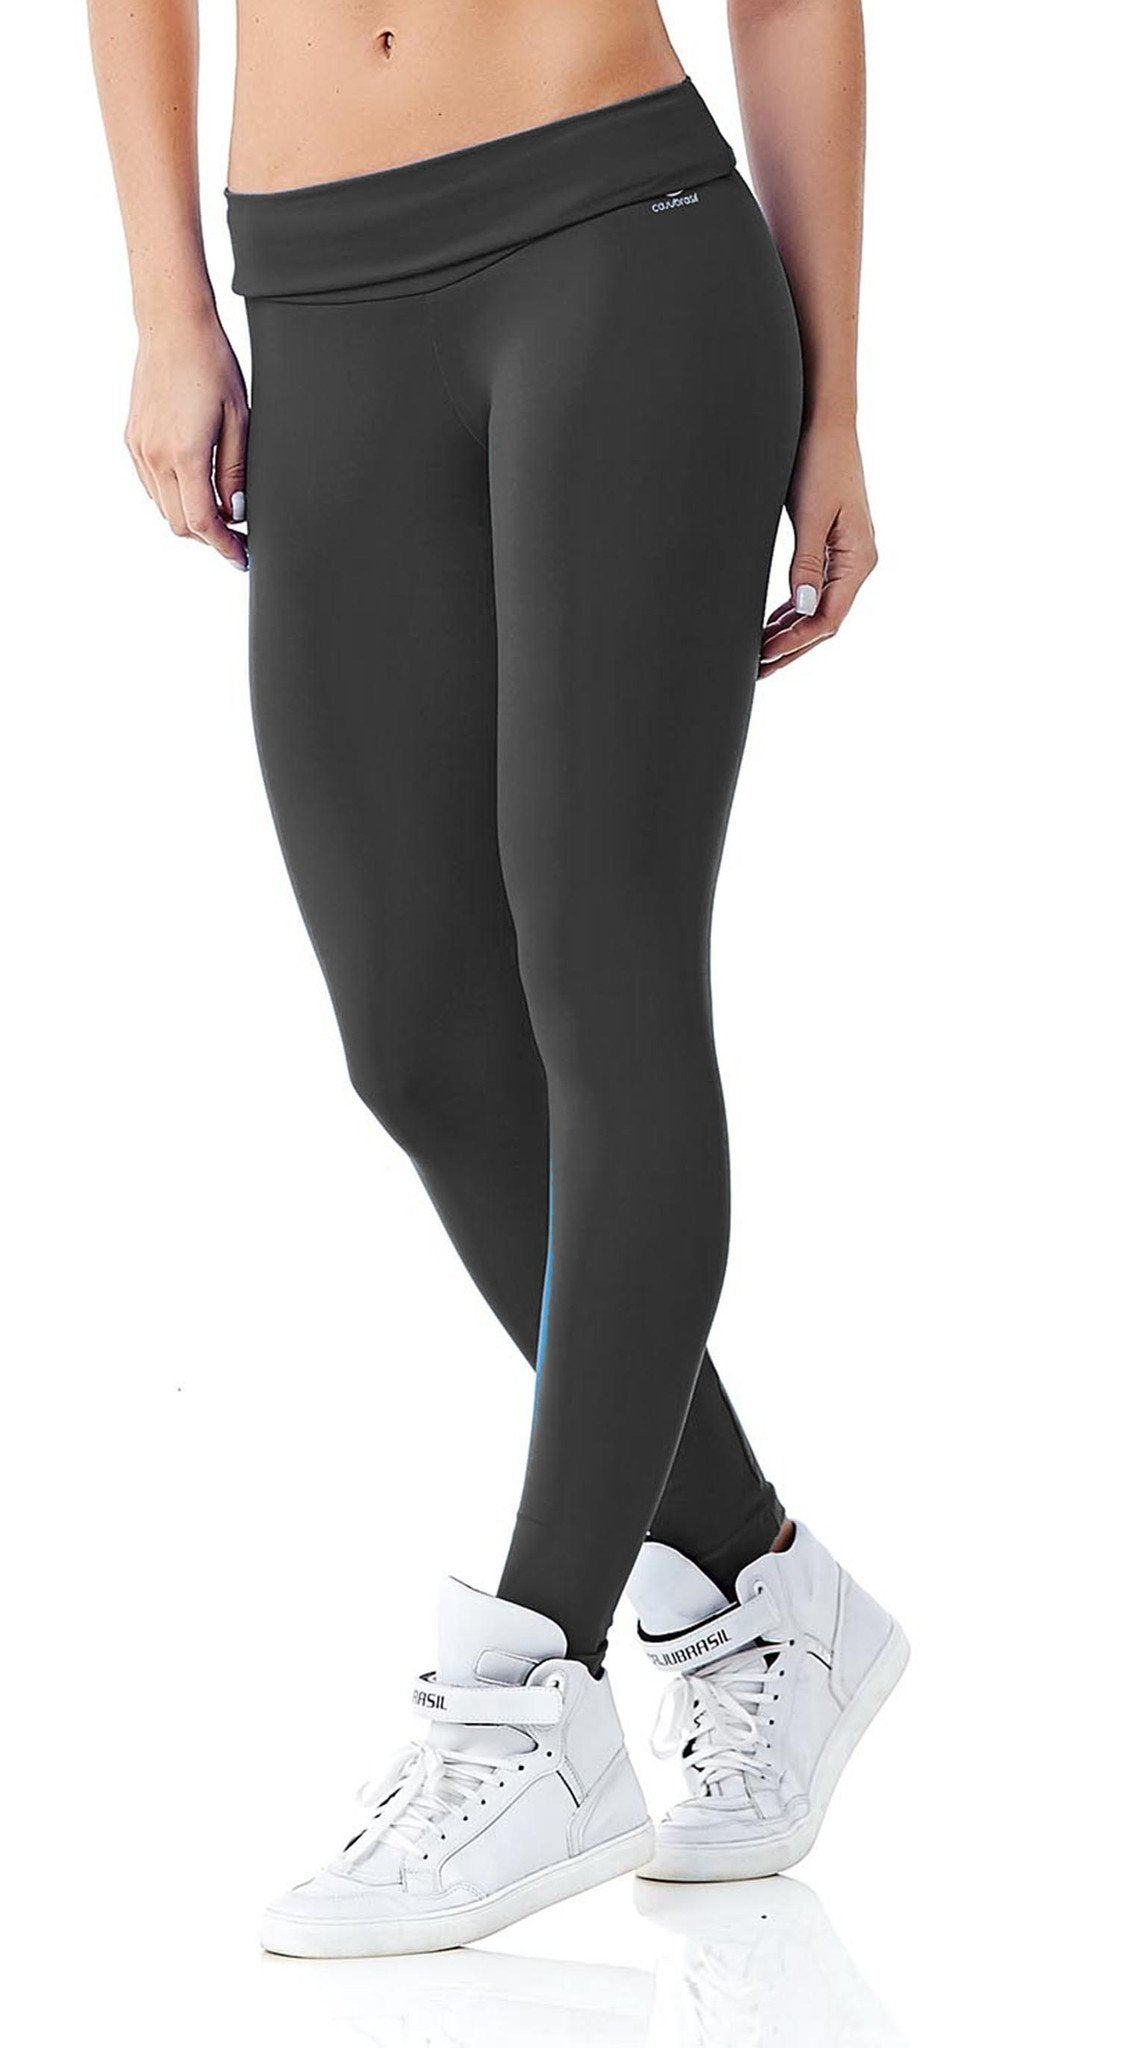 Workout Legging - Basic High Waist Dark Gray